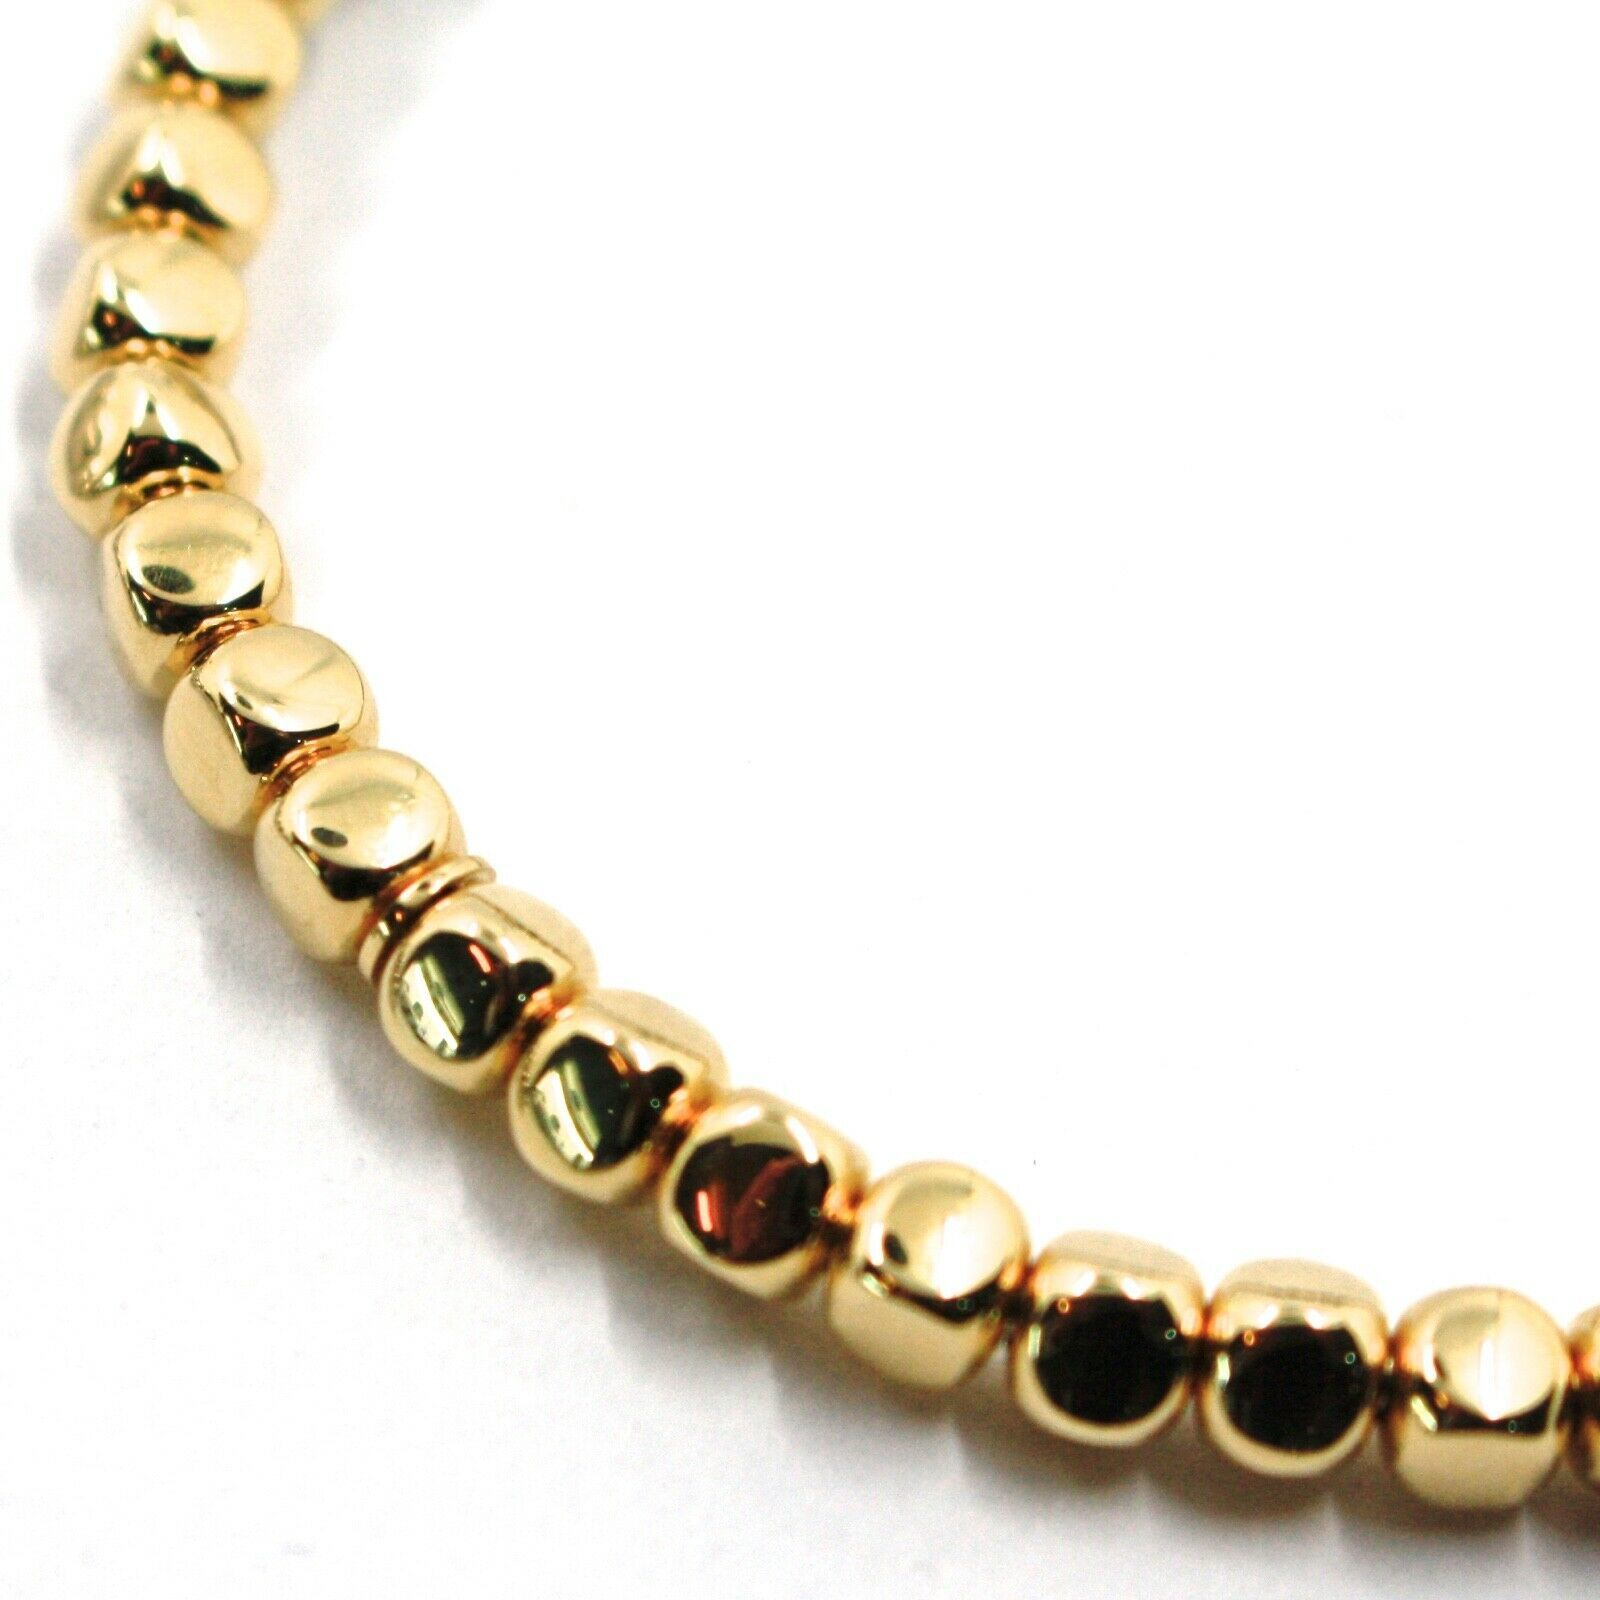 """SOLID 18K YELLOW GOLD ELASTIC BRACELET, CUBES DIAMETER 4 MM 0.16"""", MADE IN ITALY image 3"""